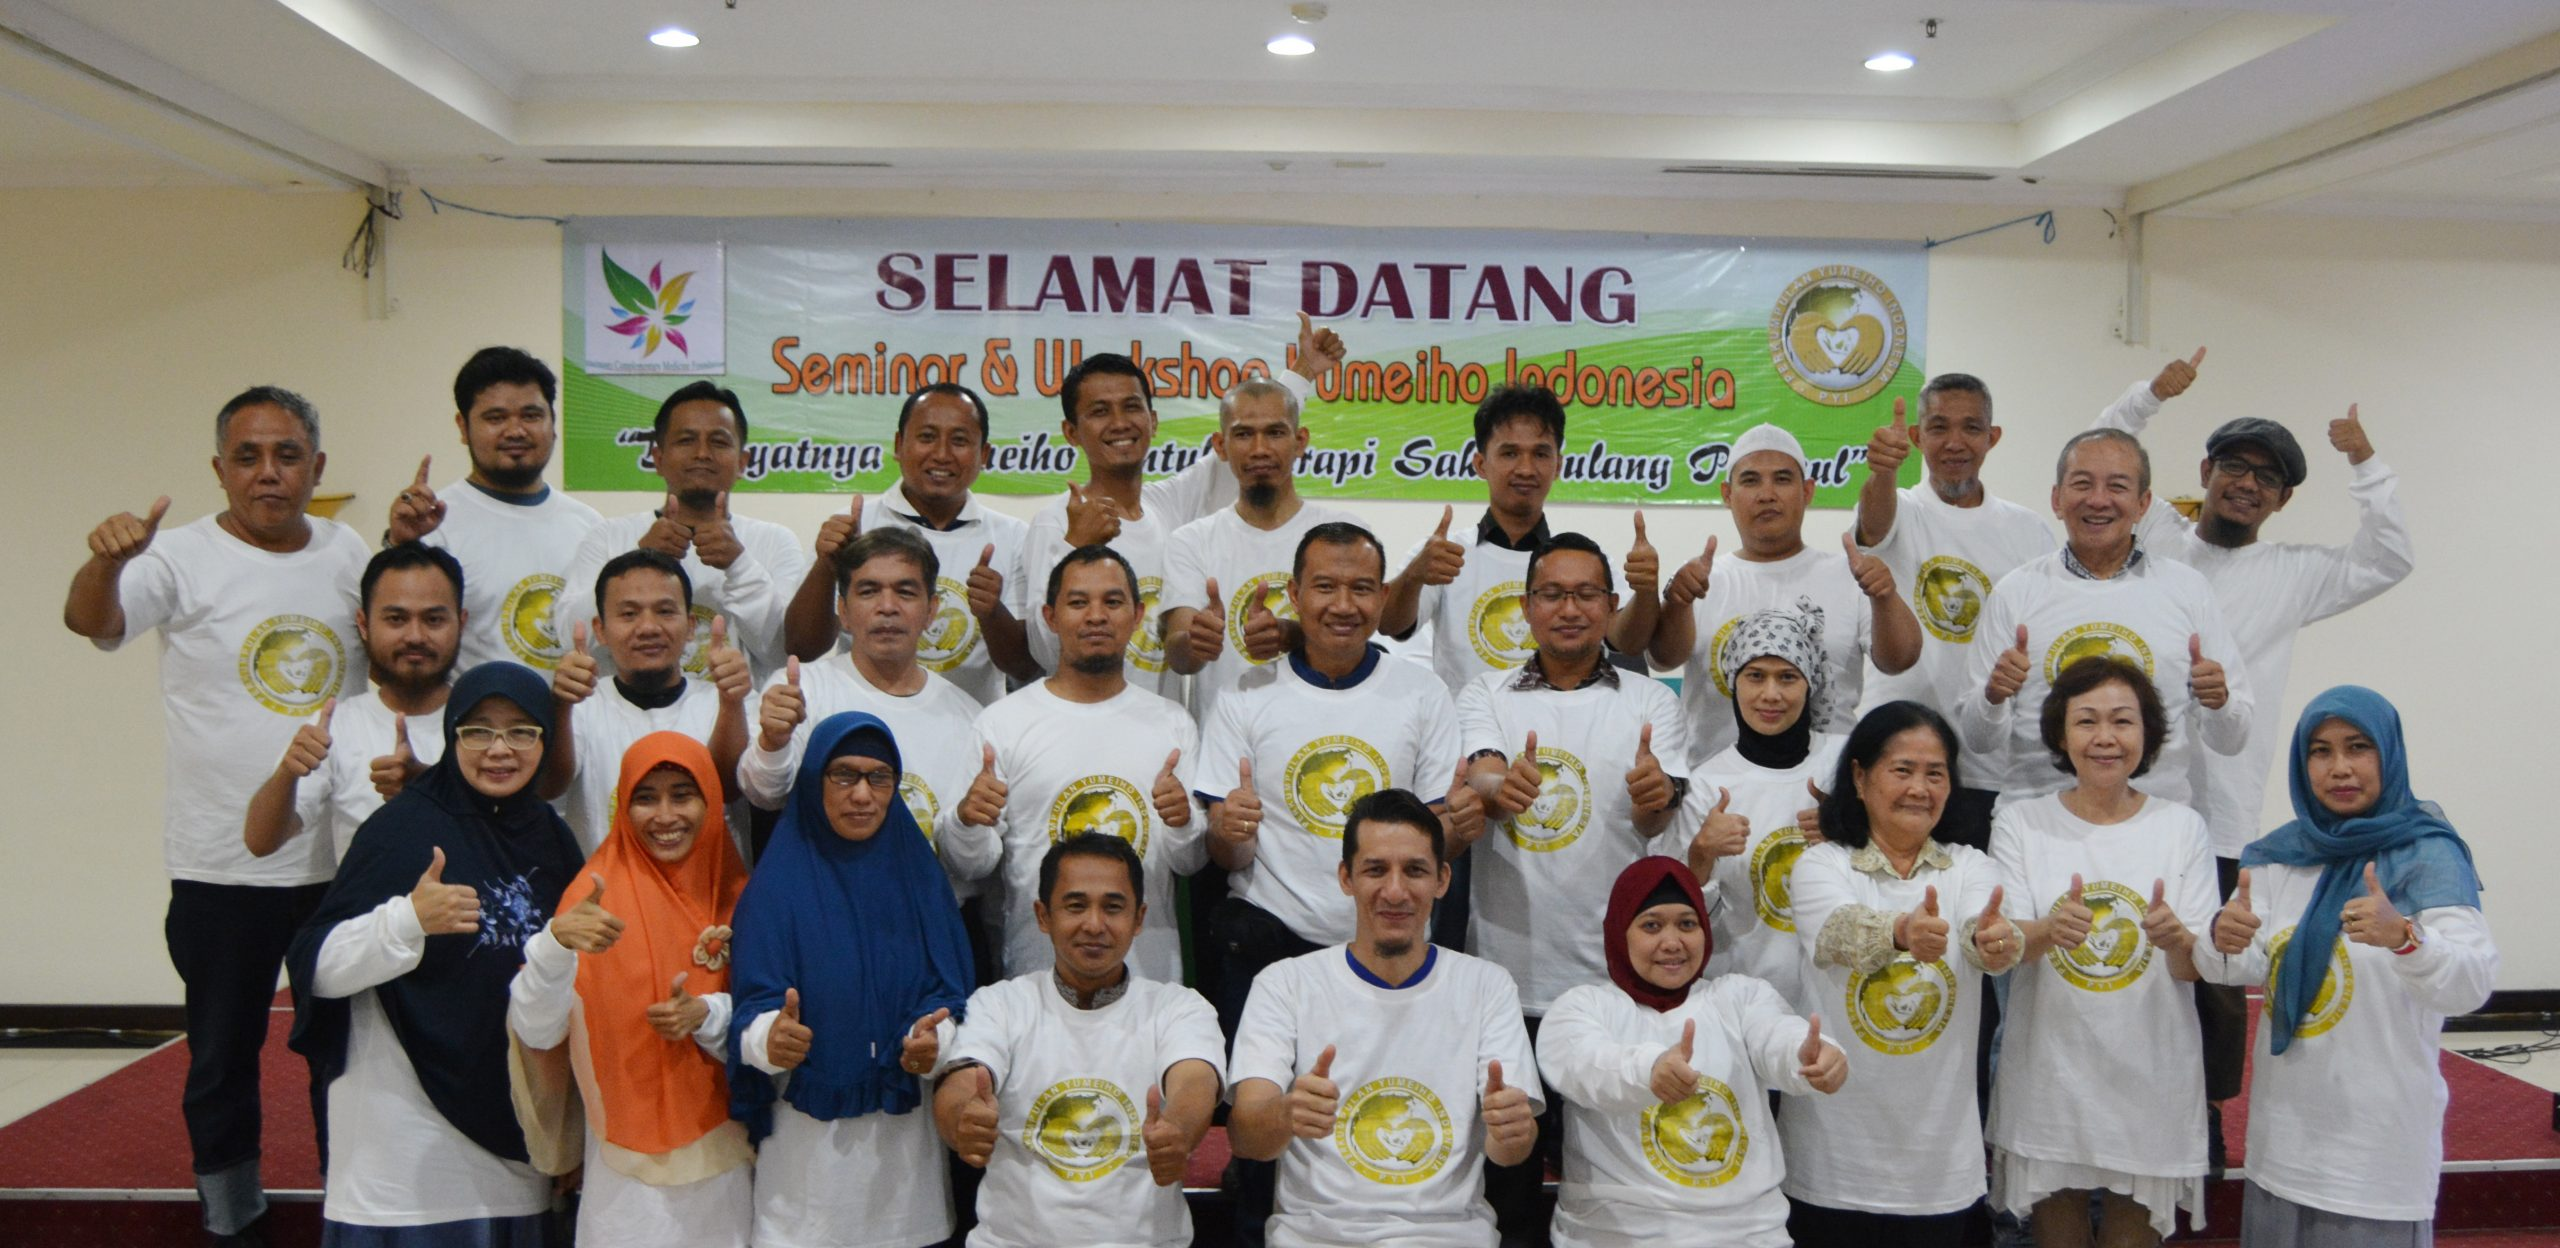 Yumeiho Seminar & Workshop di Indonesia